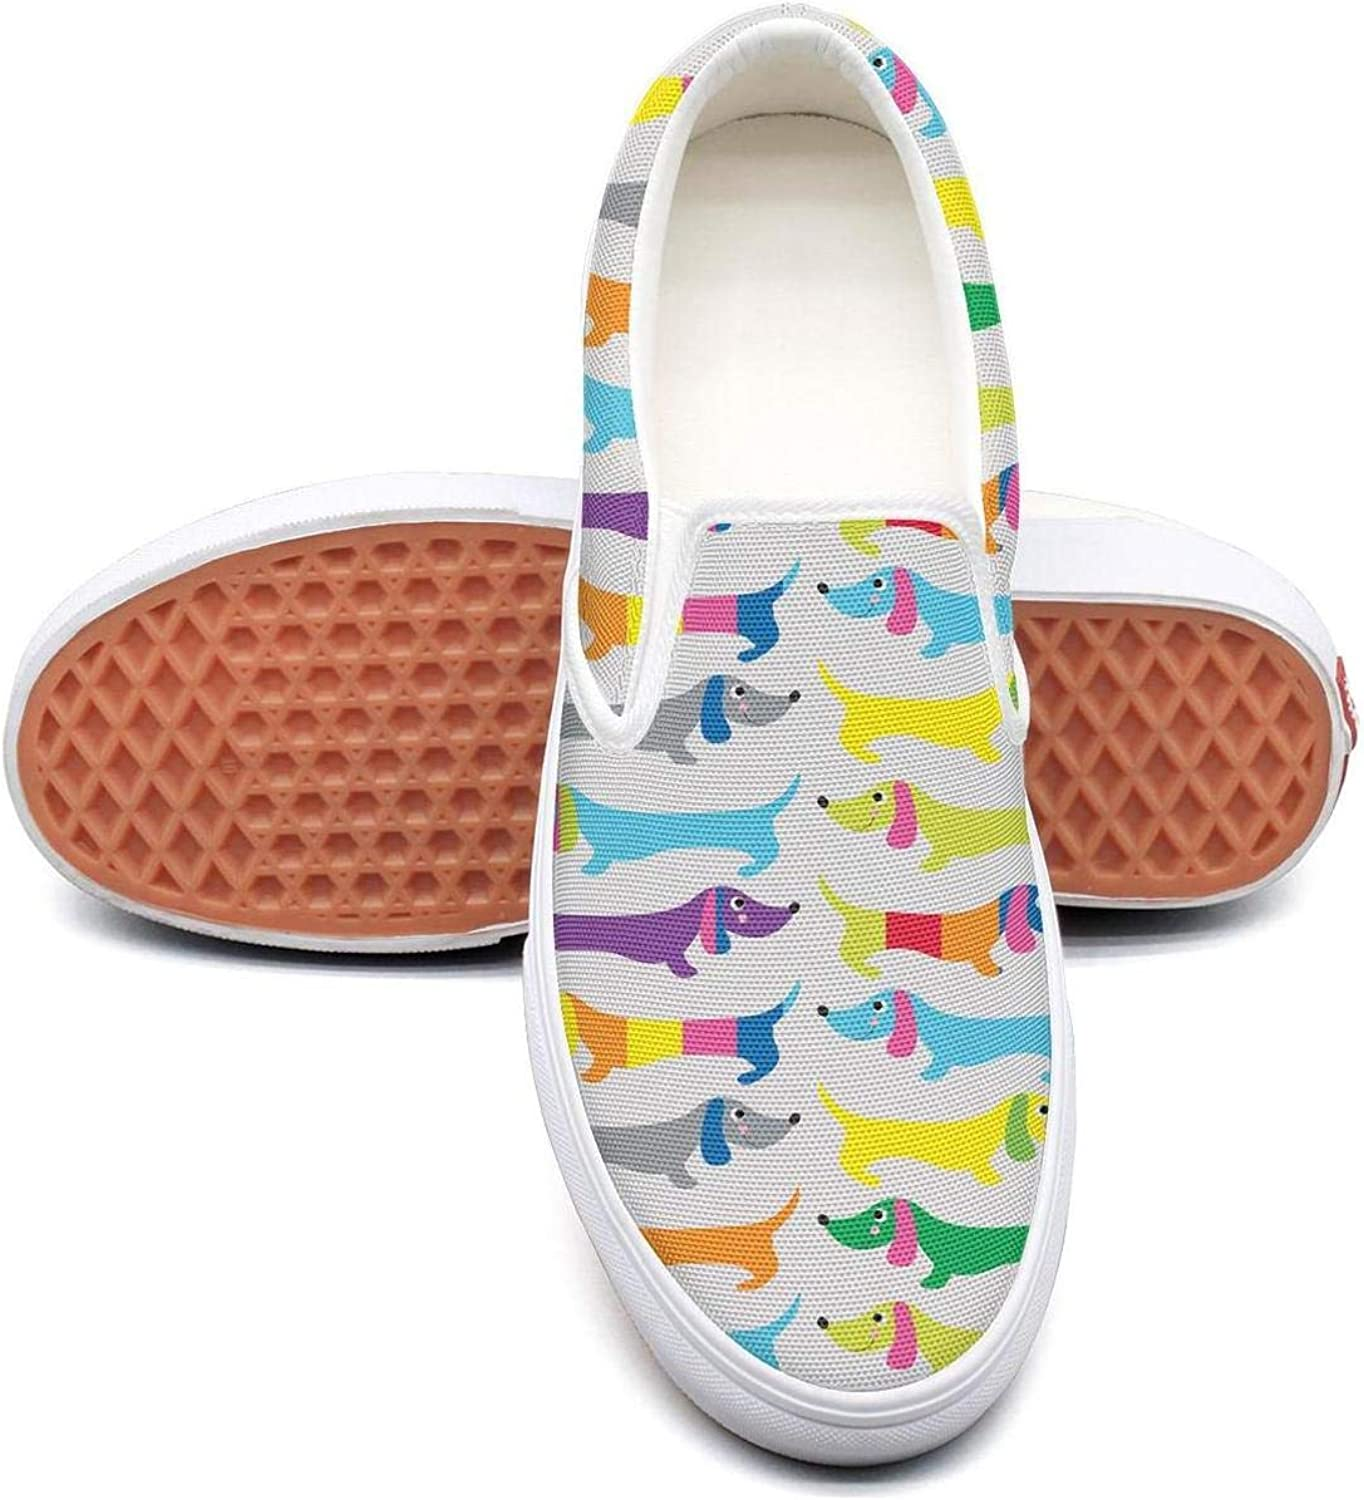 Refyds-es colorful Dachshund Funny Womens Fashion Slip on Low Top Lightweight Canvas Volleyball Sneakers